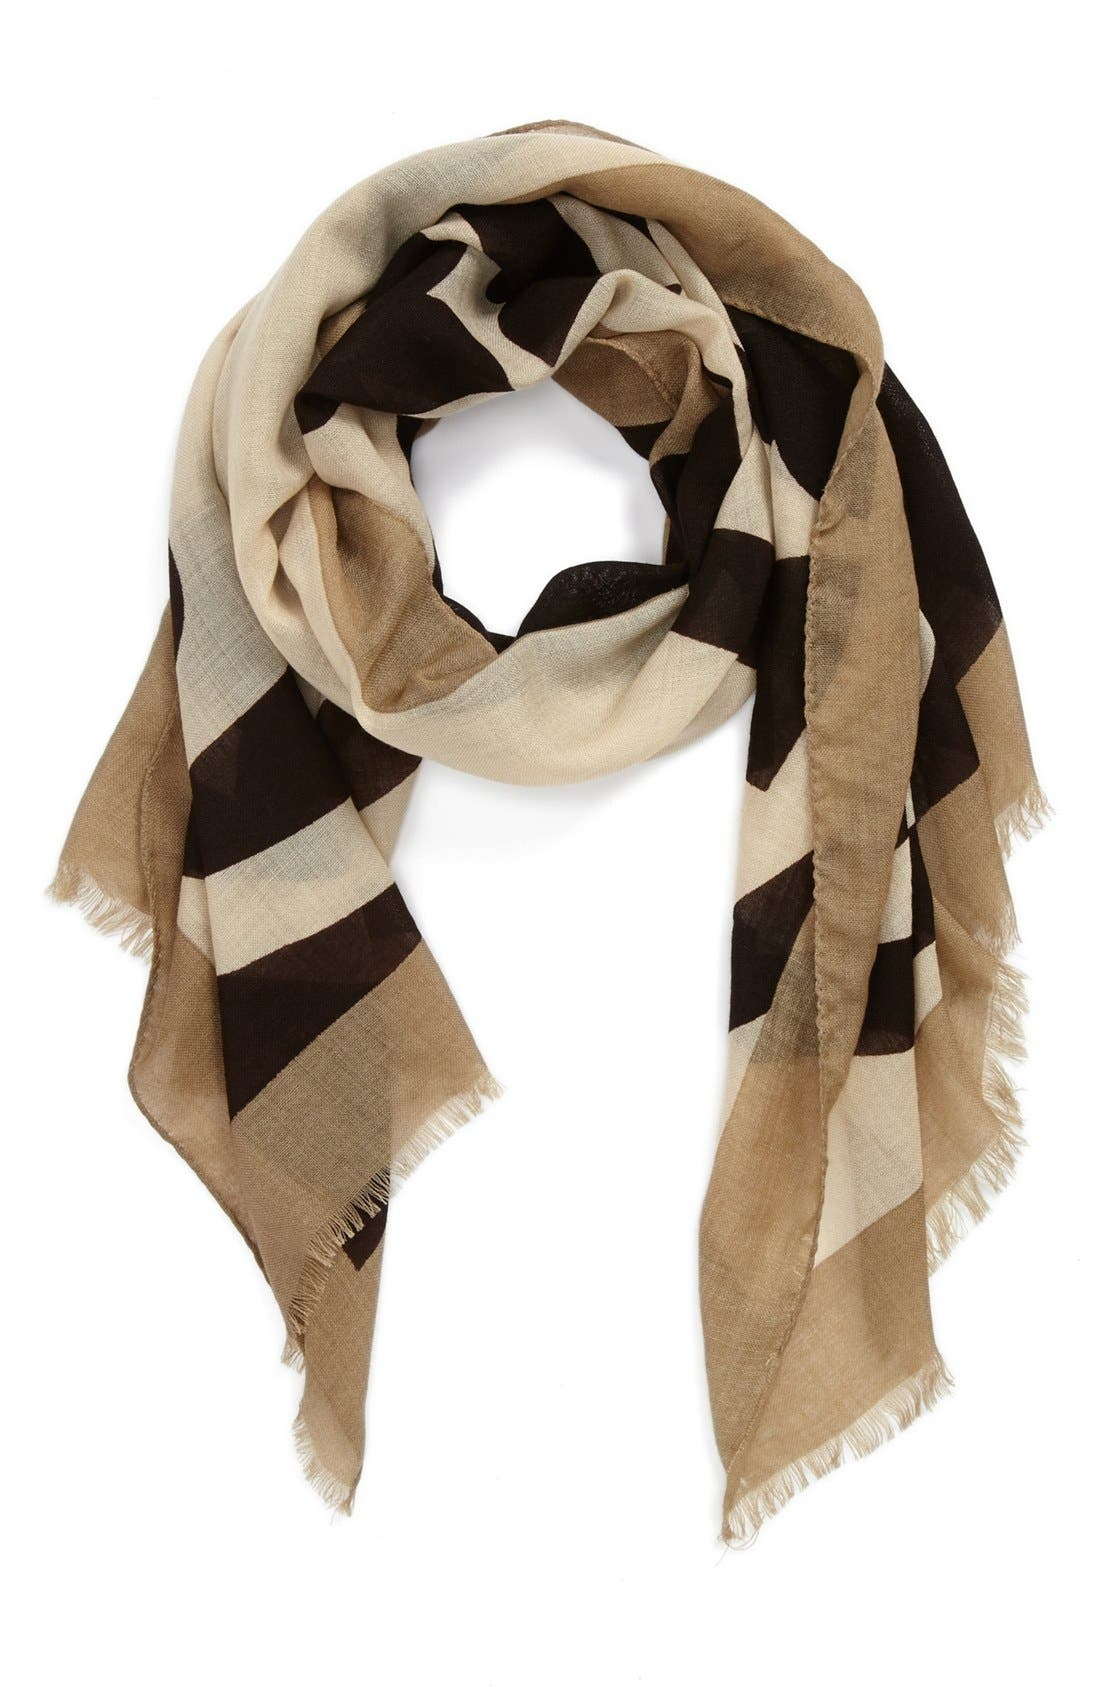 TORY BURCH 'Reva' Wool Scarf, Main, color, 200